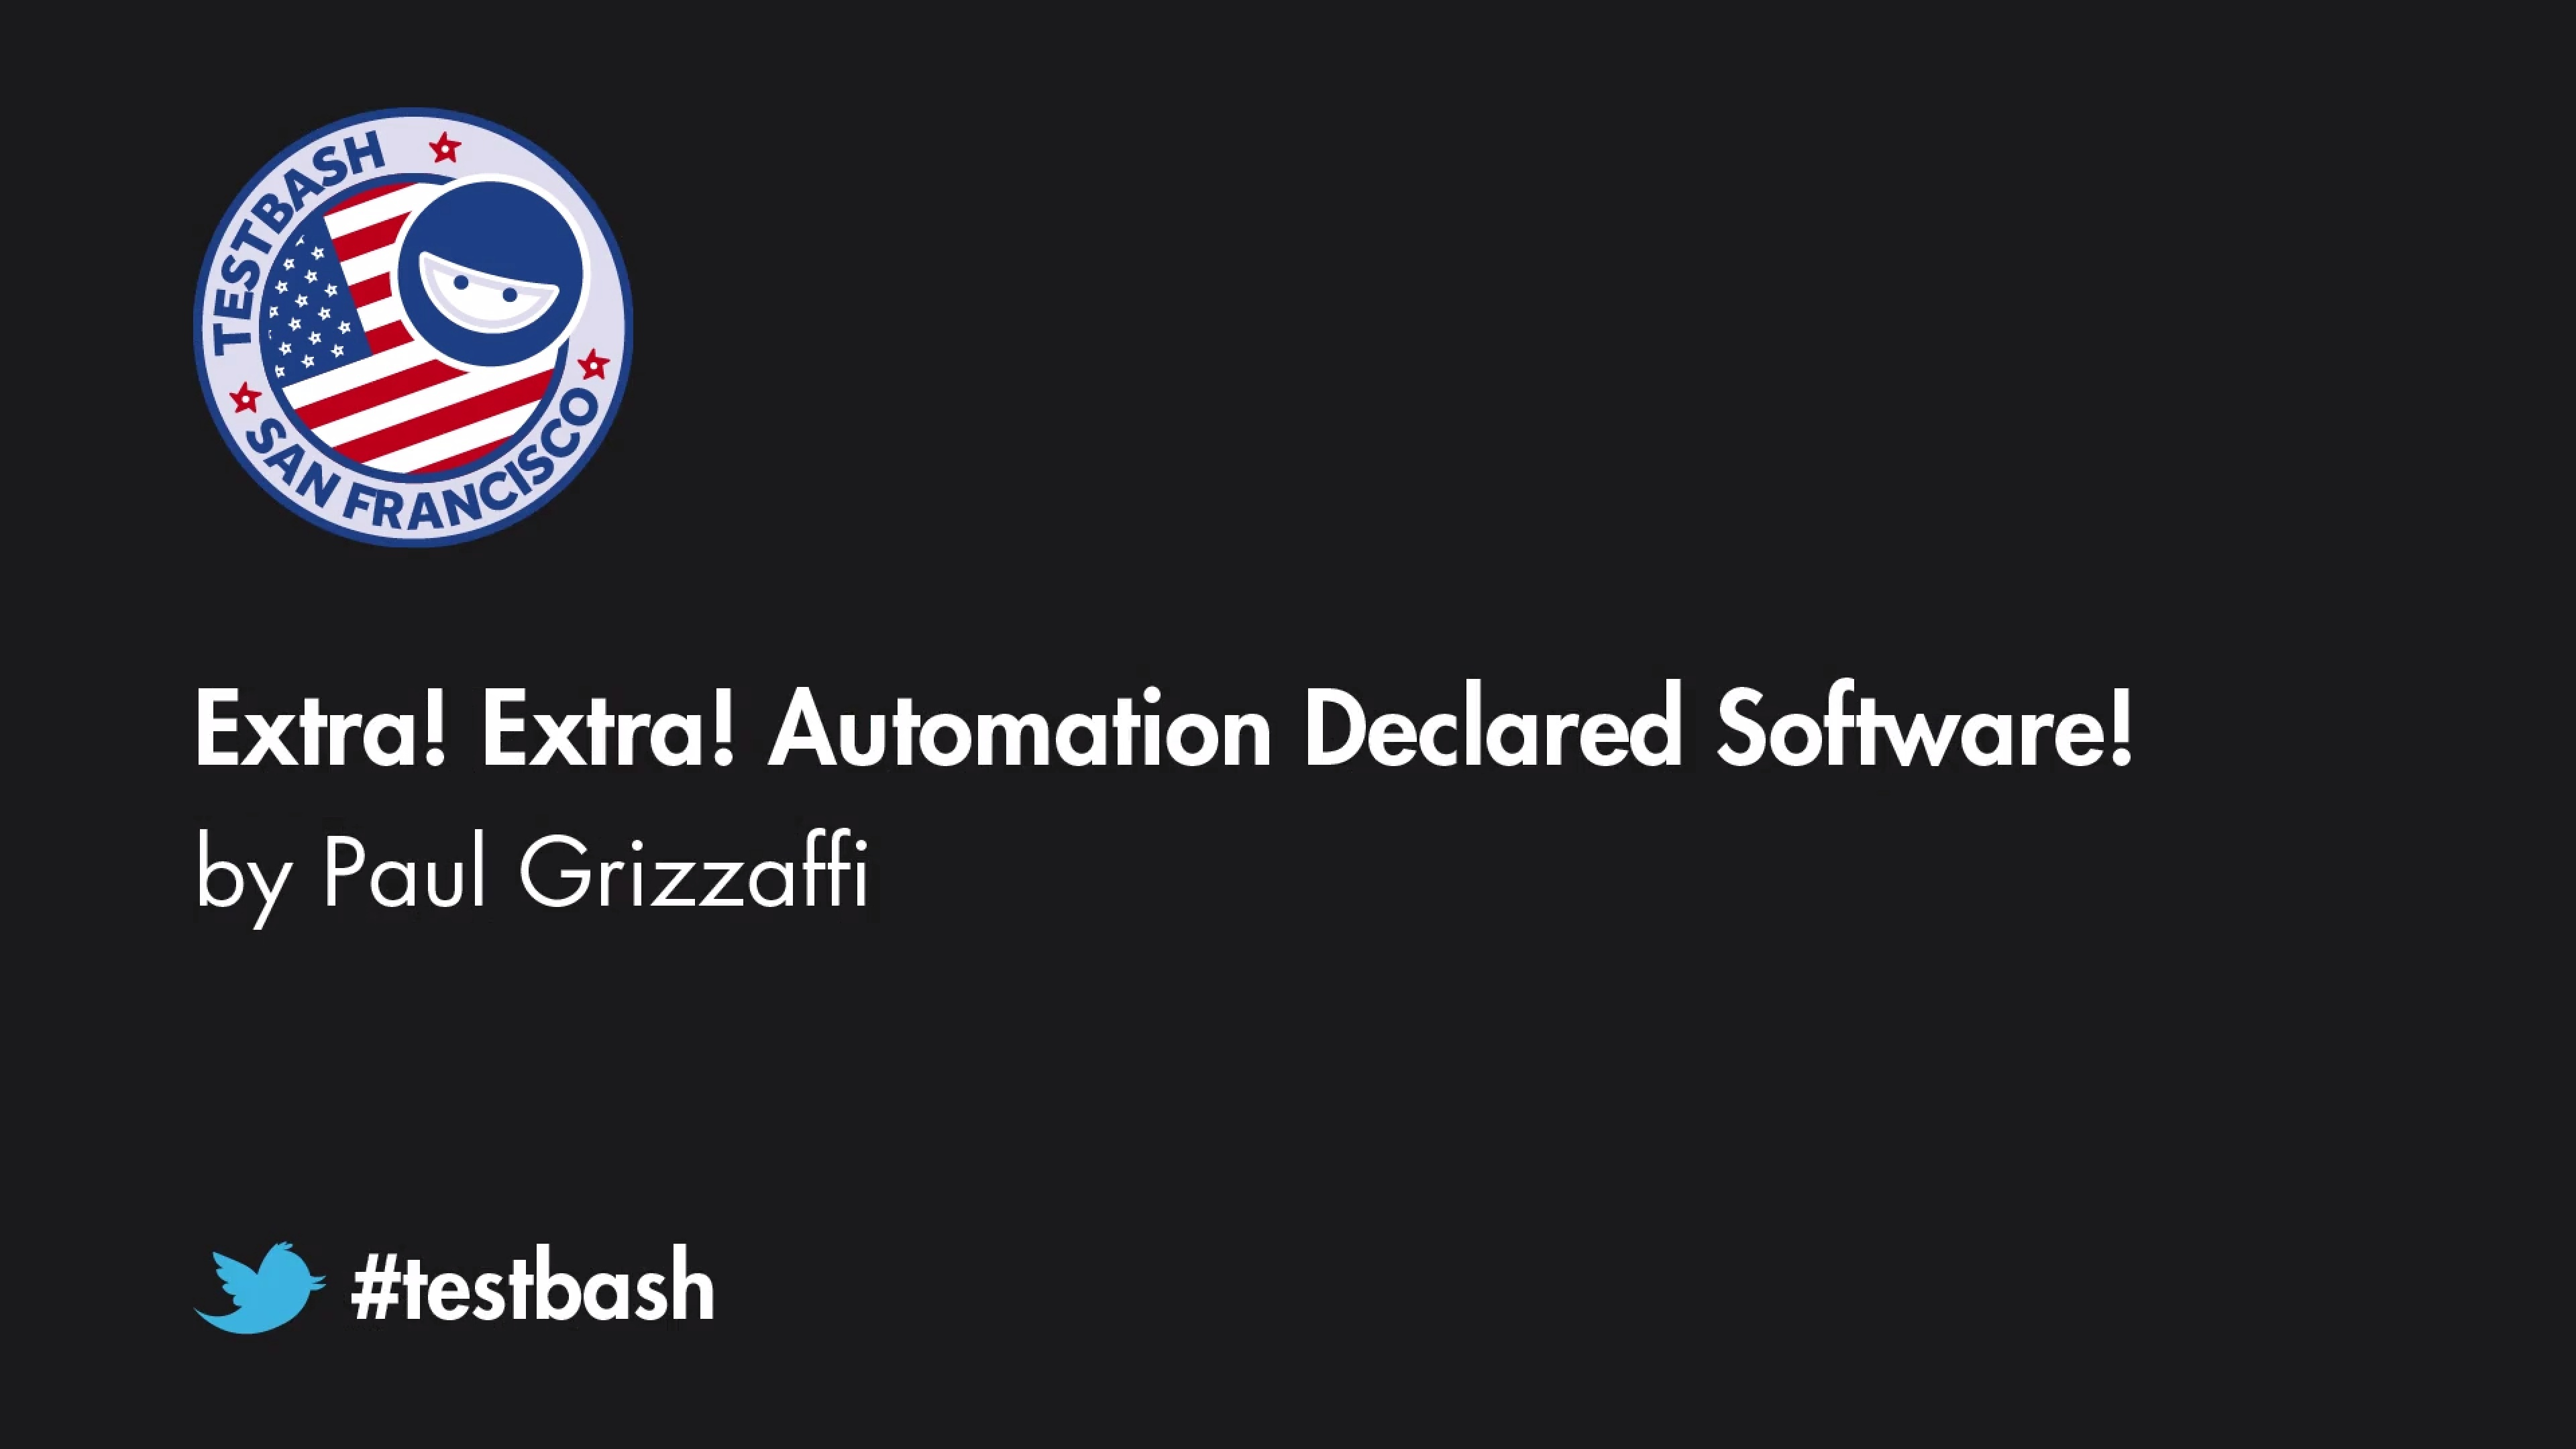 Extra! Extra! Automation Declared Software! - Paul Grizzaffi